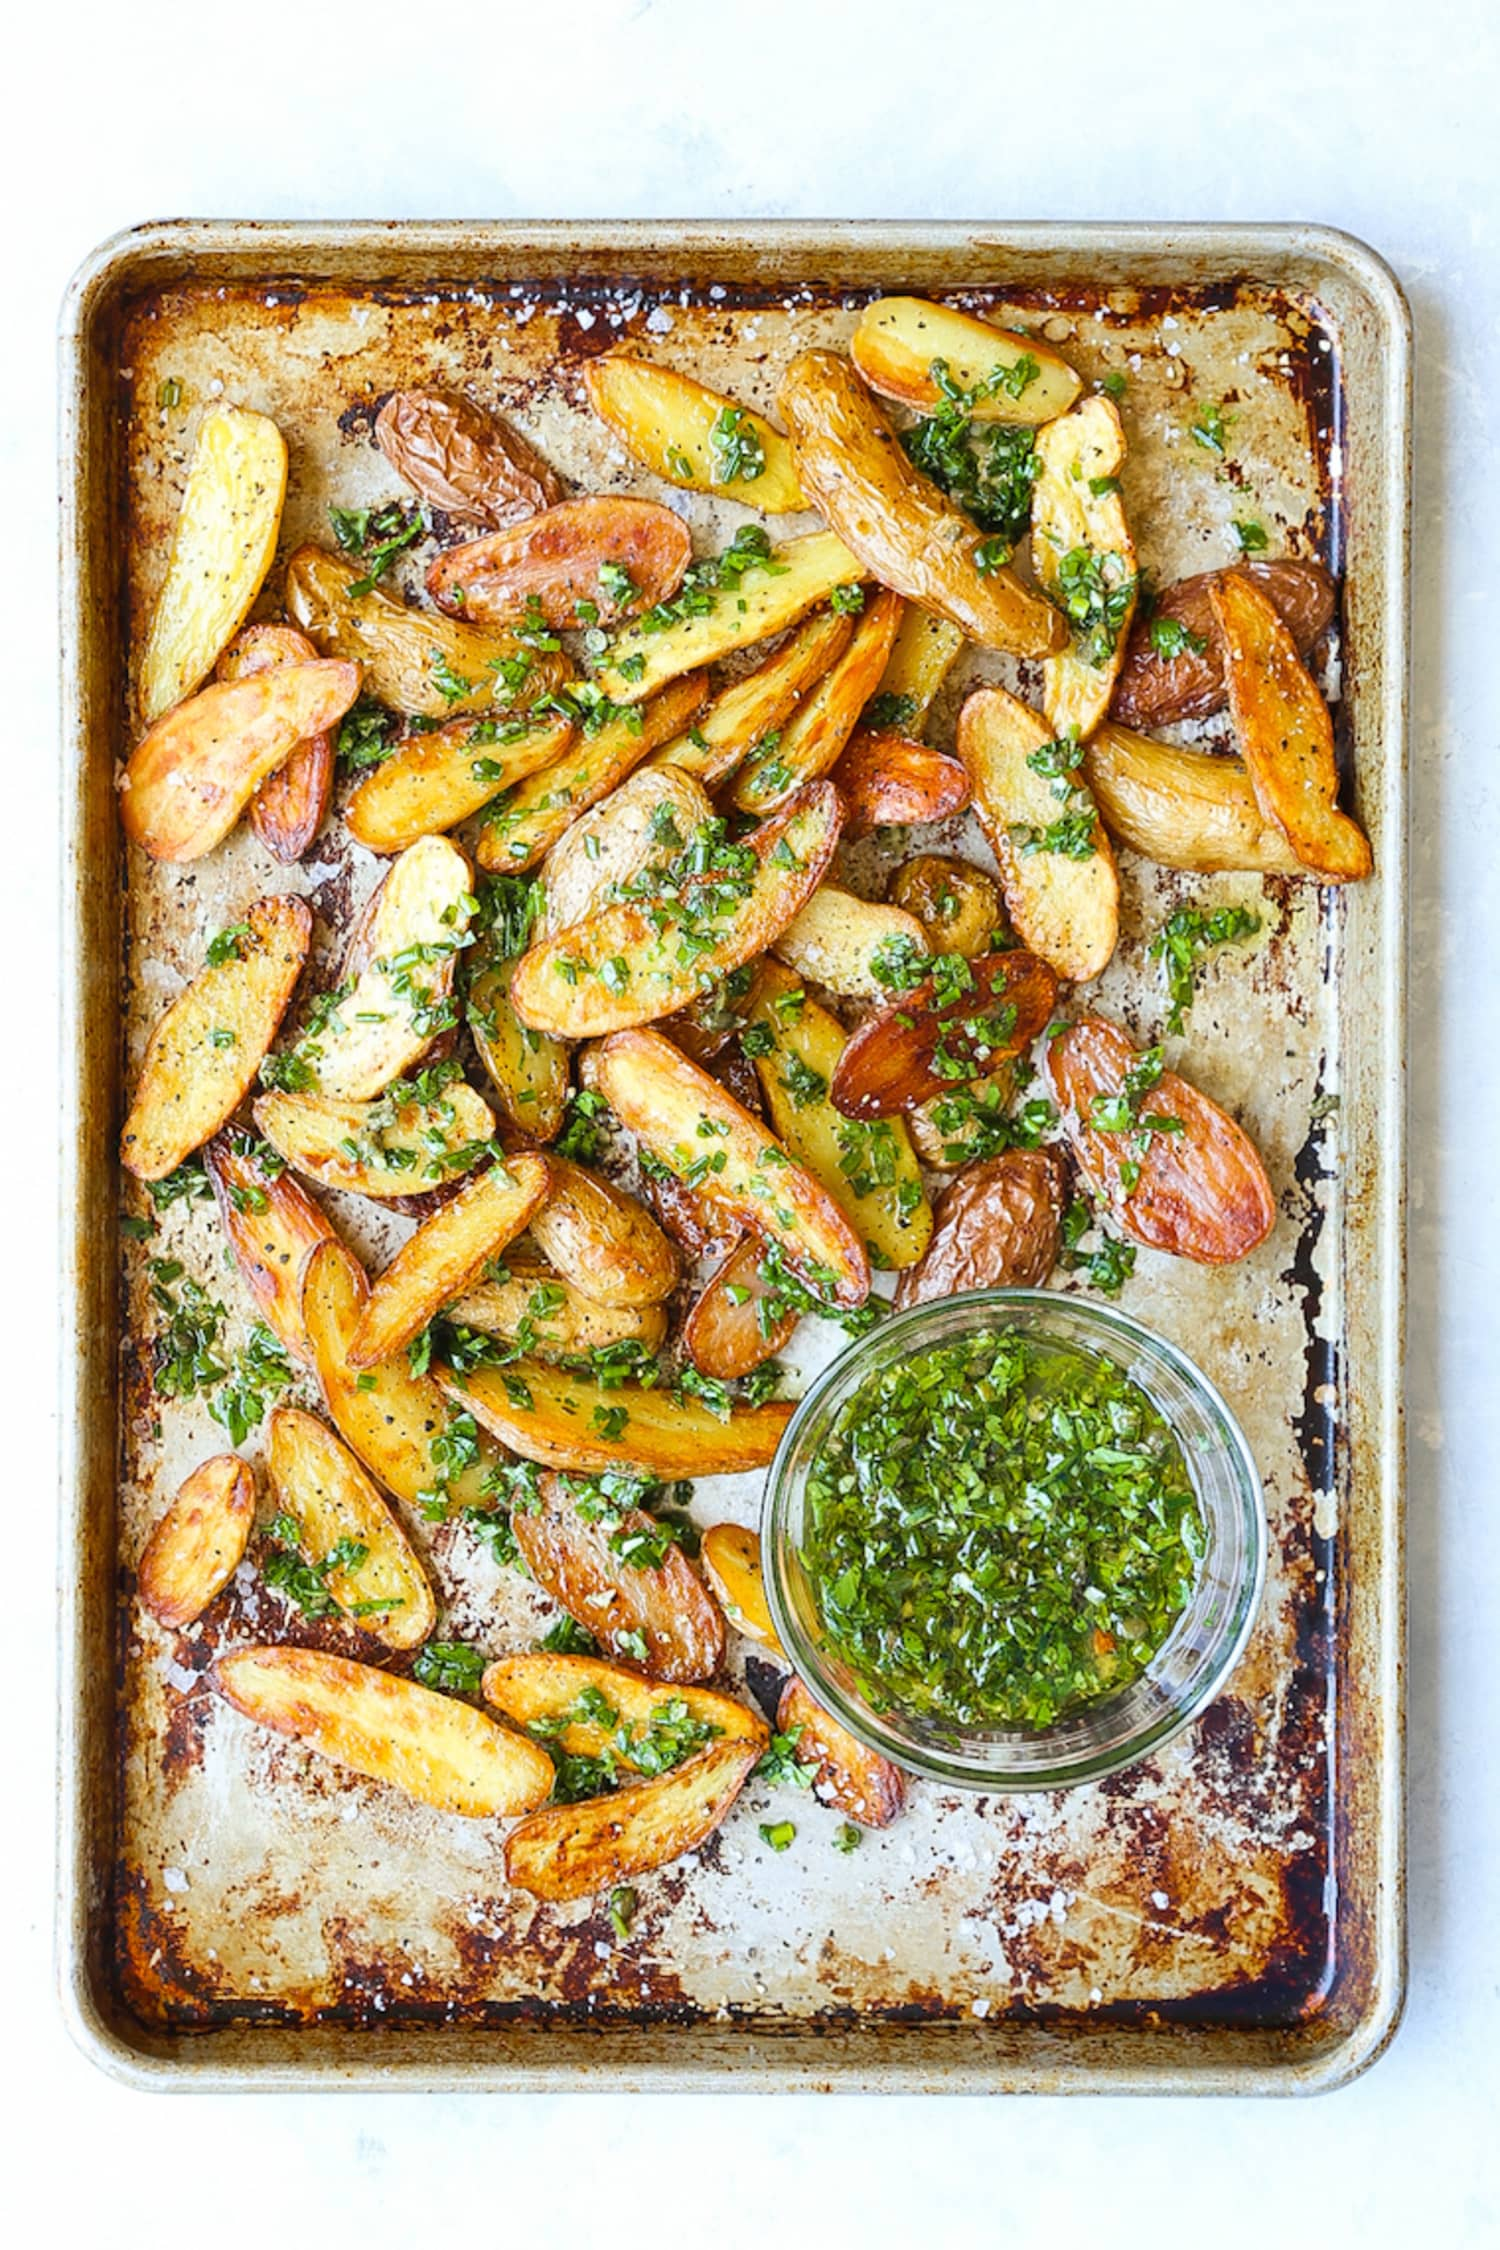 Baked Garlic Herb Potato Wedges Are Better than French Fries (Yes, Really)